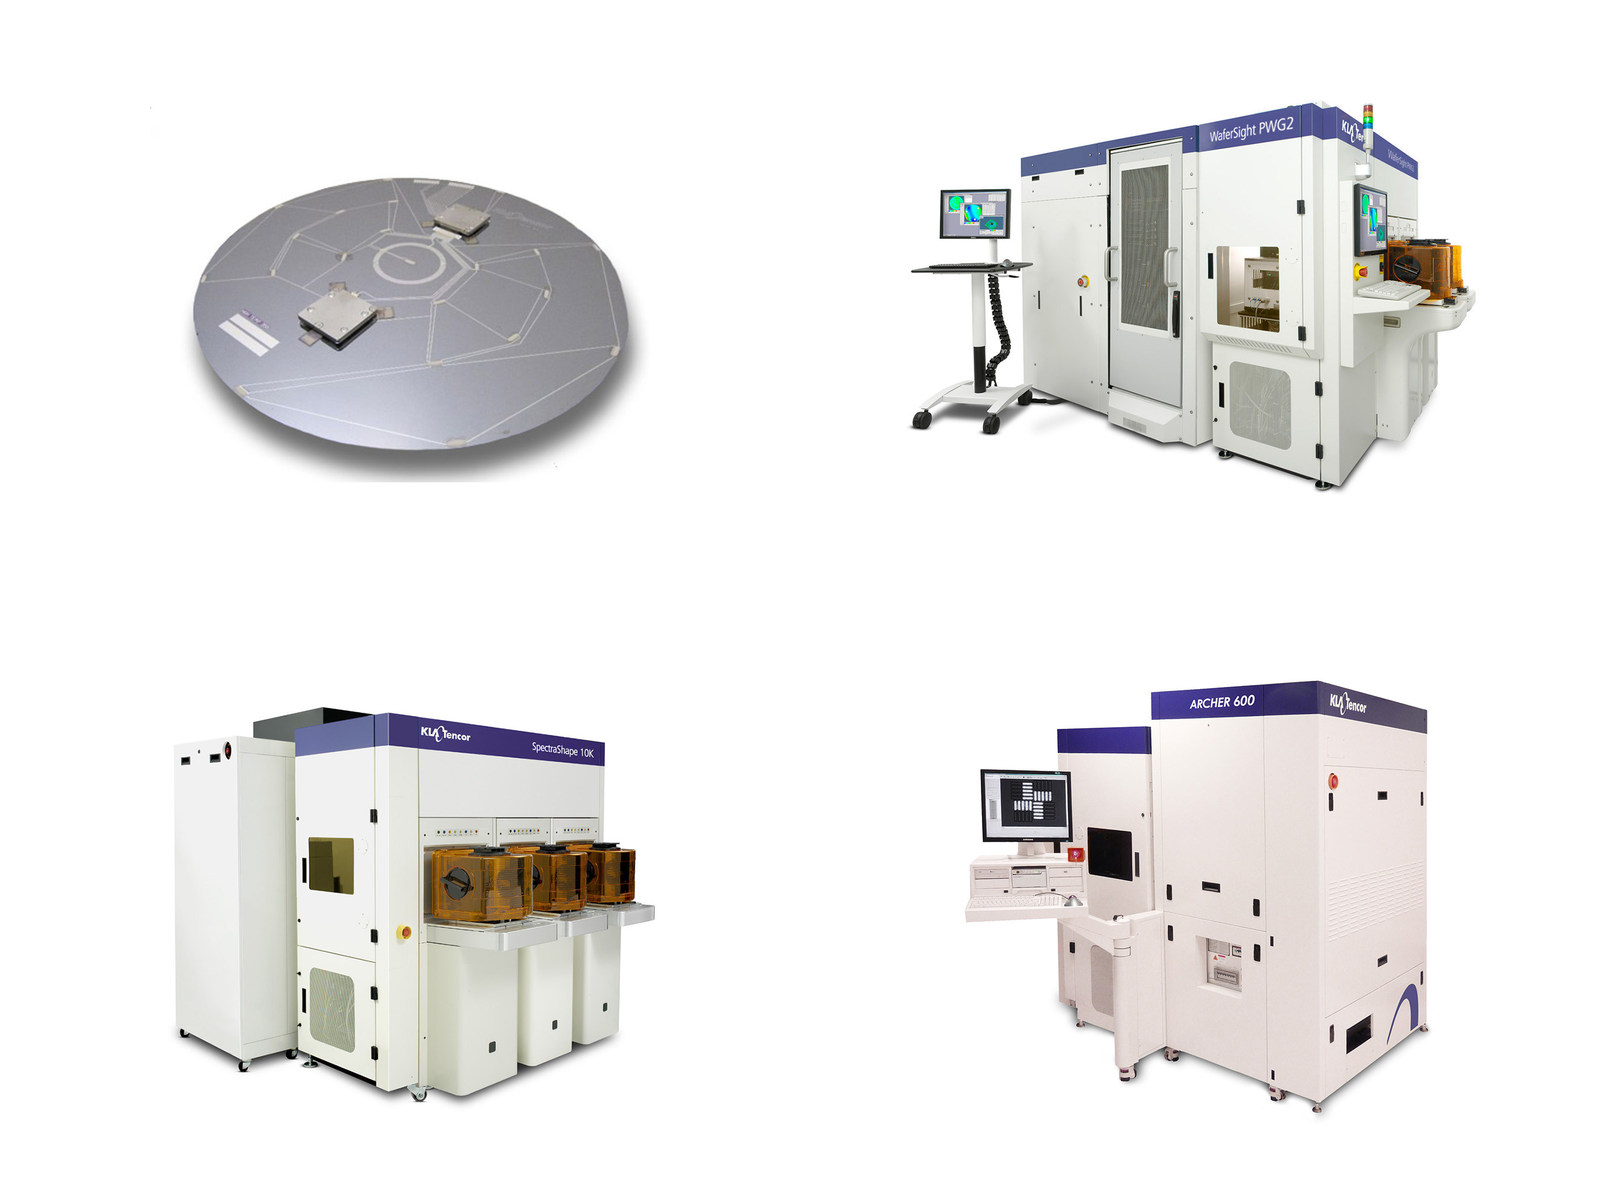 KLA-Tencor's New Metrology Systems for Leading-Edge Integrated Circuit Device Technologies